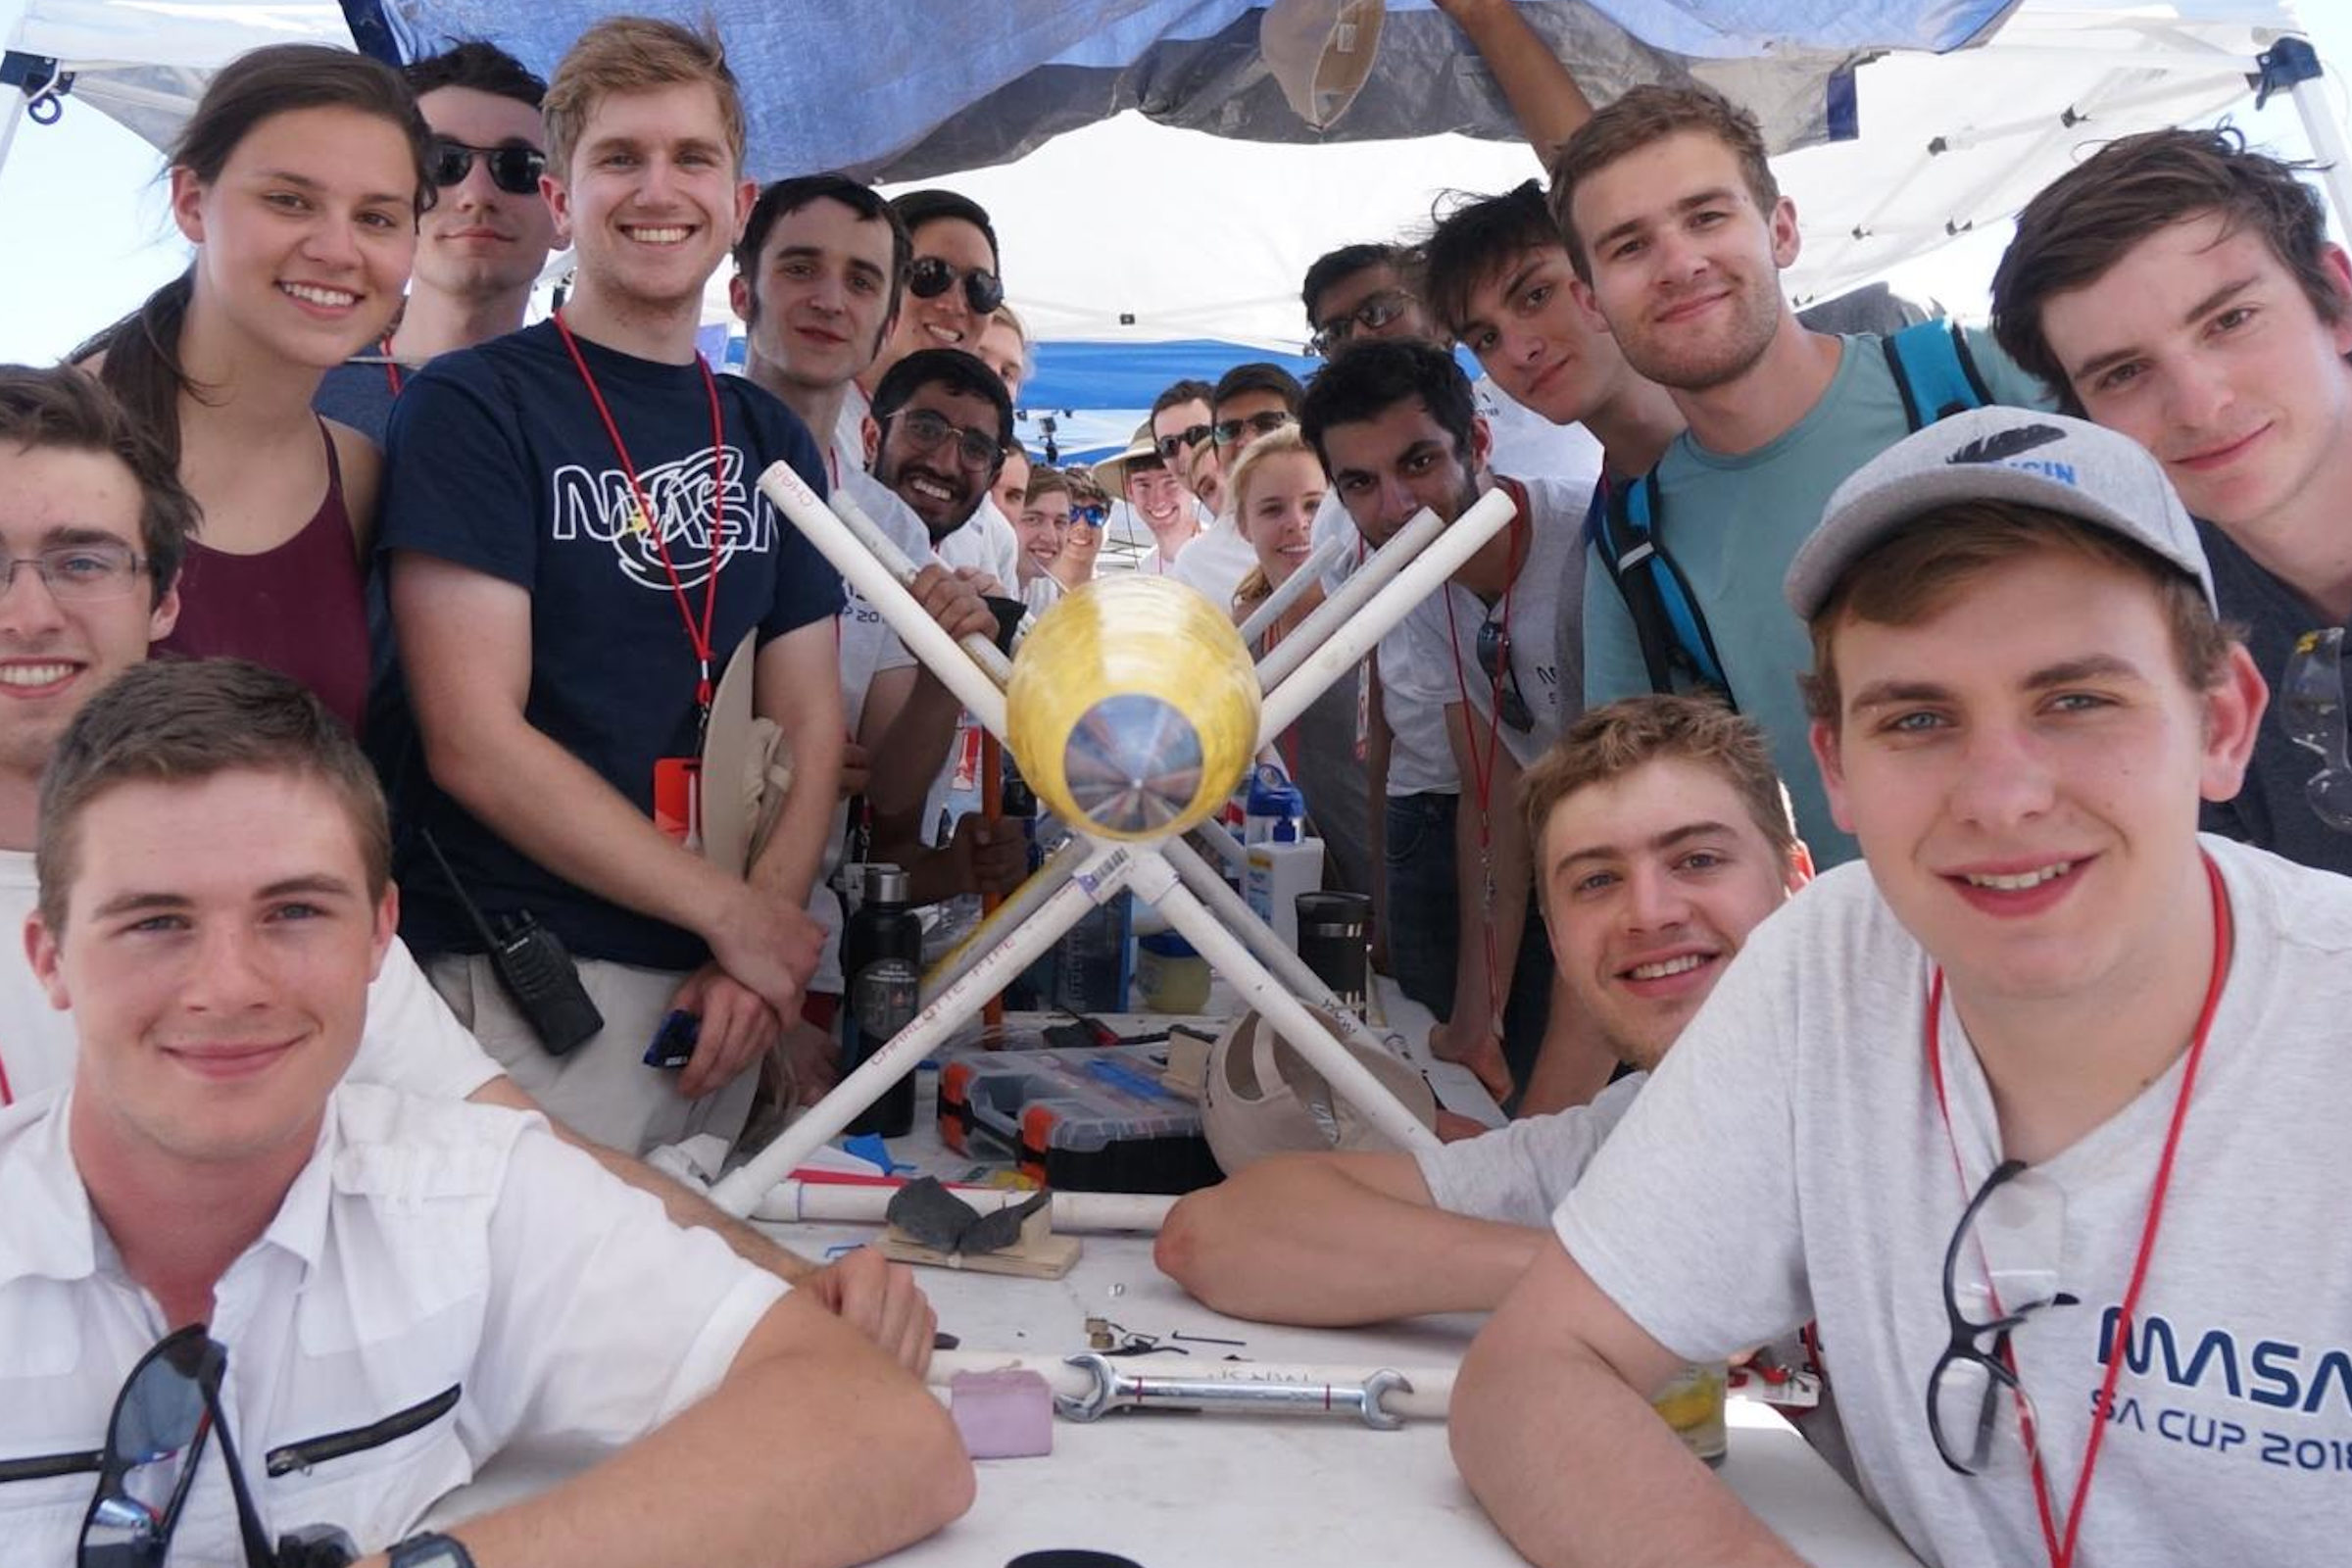 MASA Rocketry Team continues work on space shot rocket despite pandemic